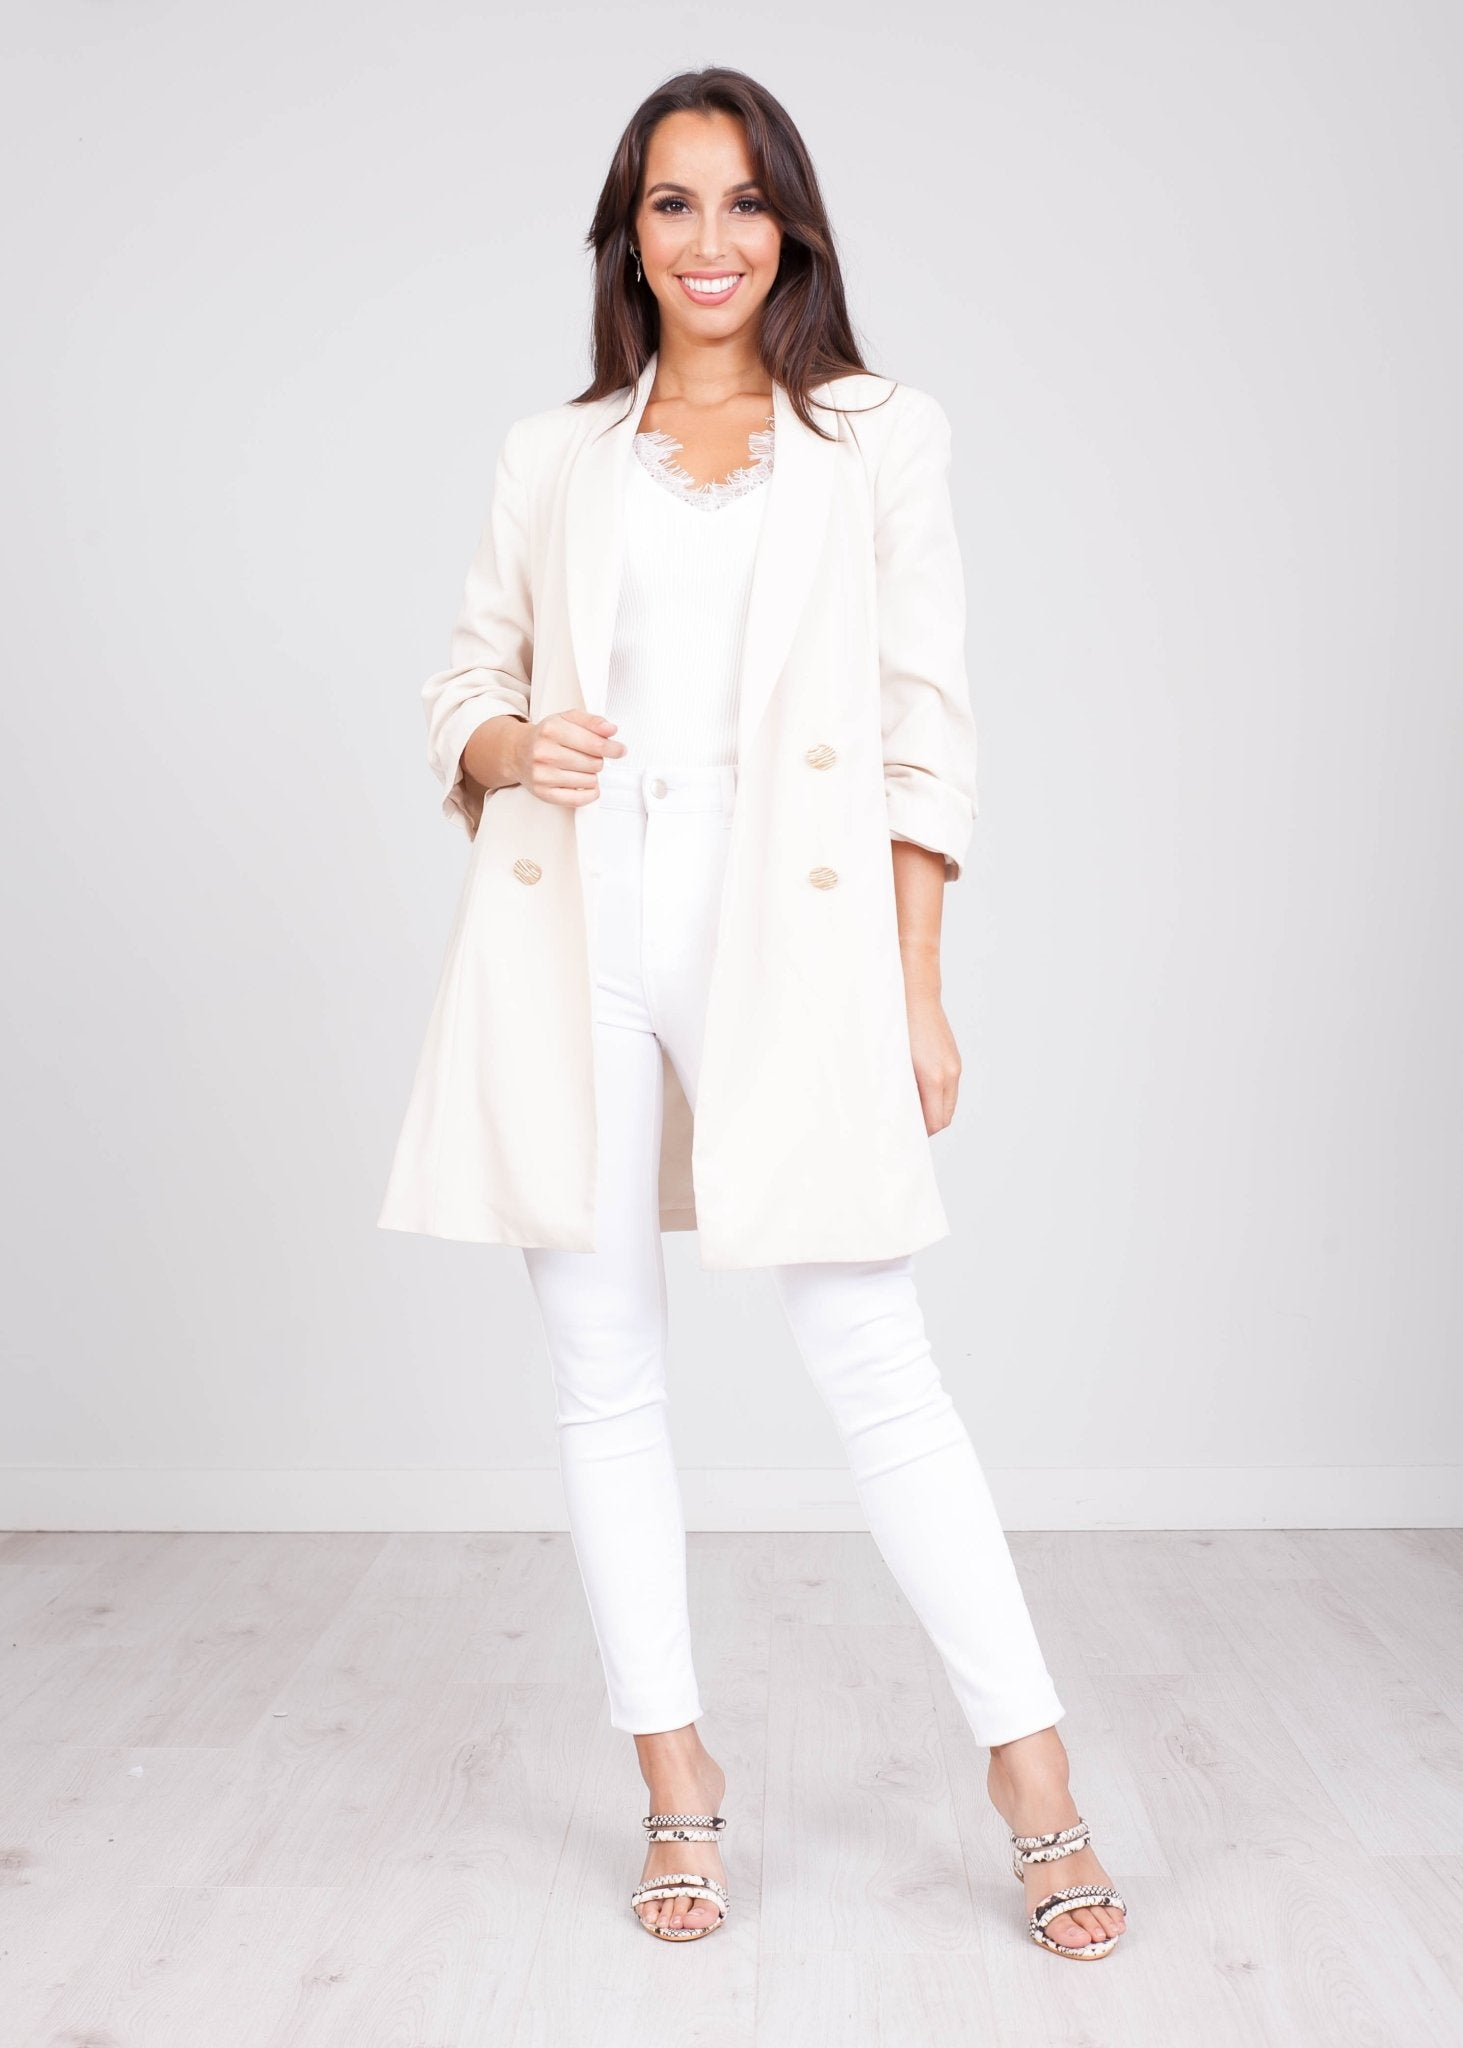 Charlee Cream Blazer - The Walk in Wardrobe